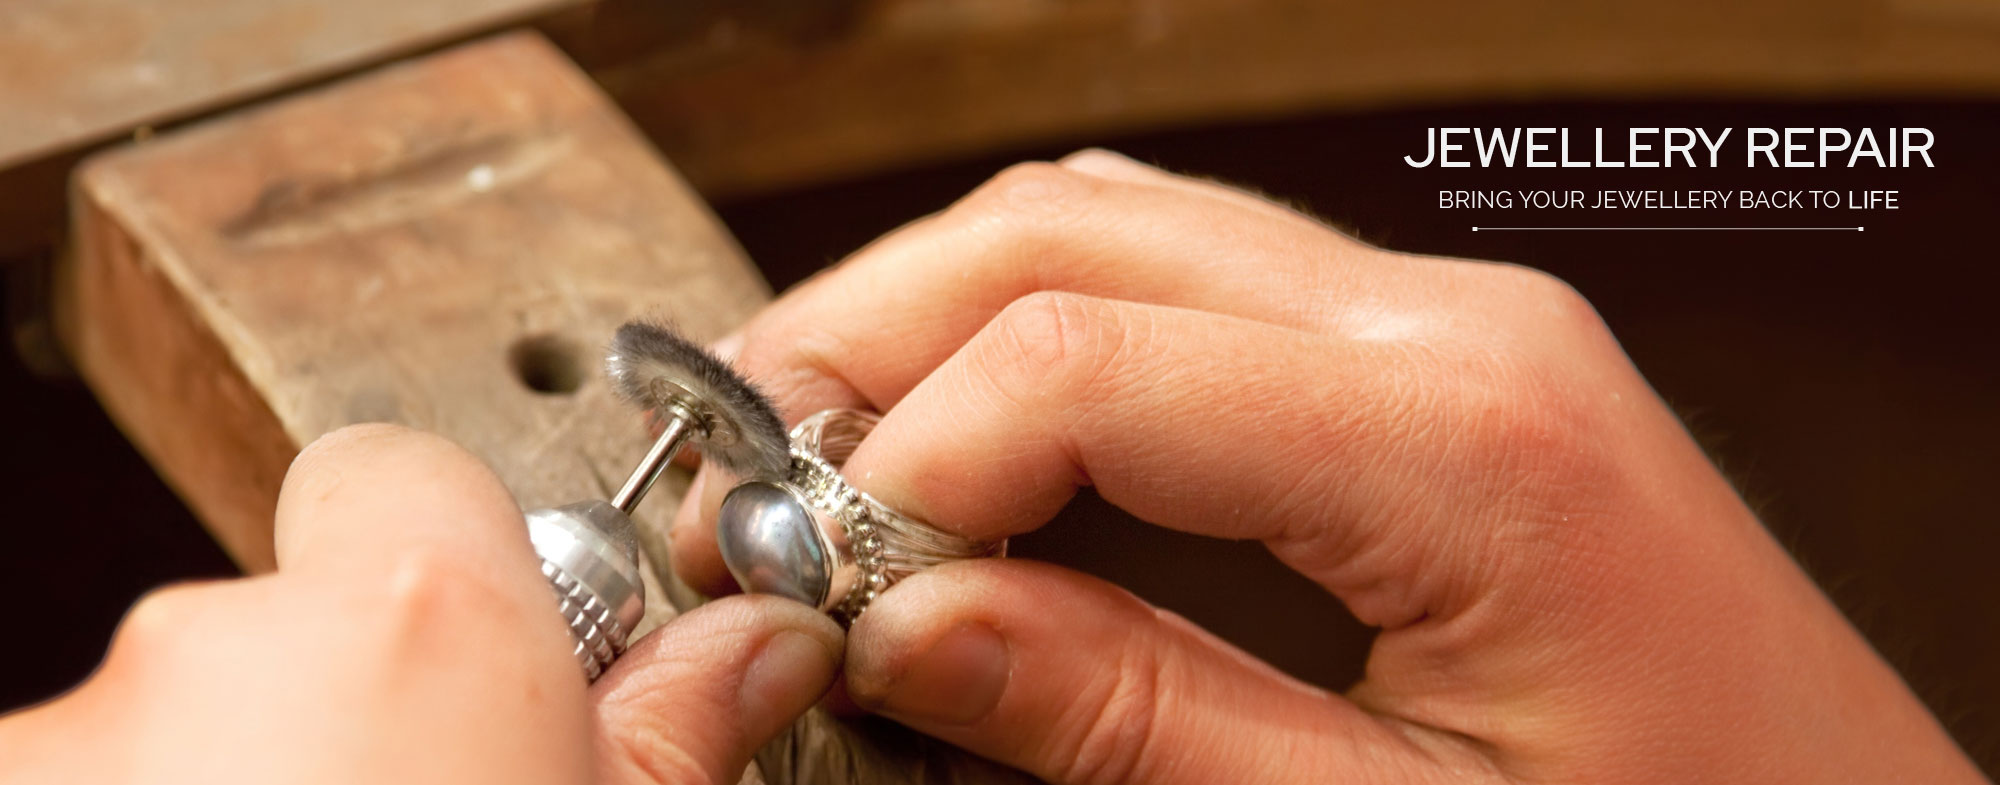 Jewelry Repair Services At Facets Showcase Jewellers In Emerald, QLD